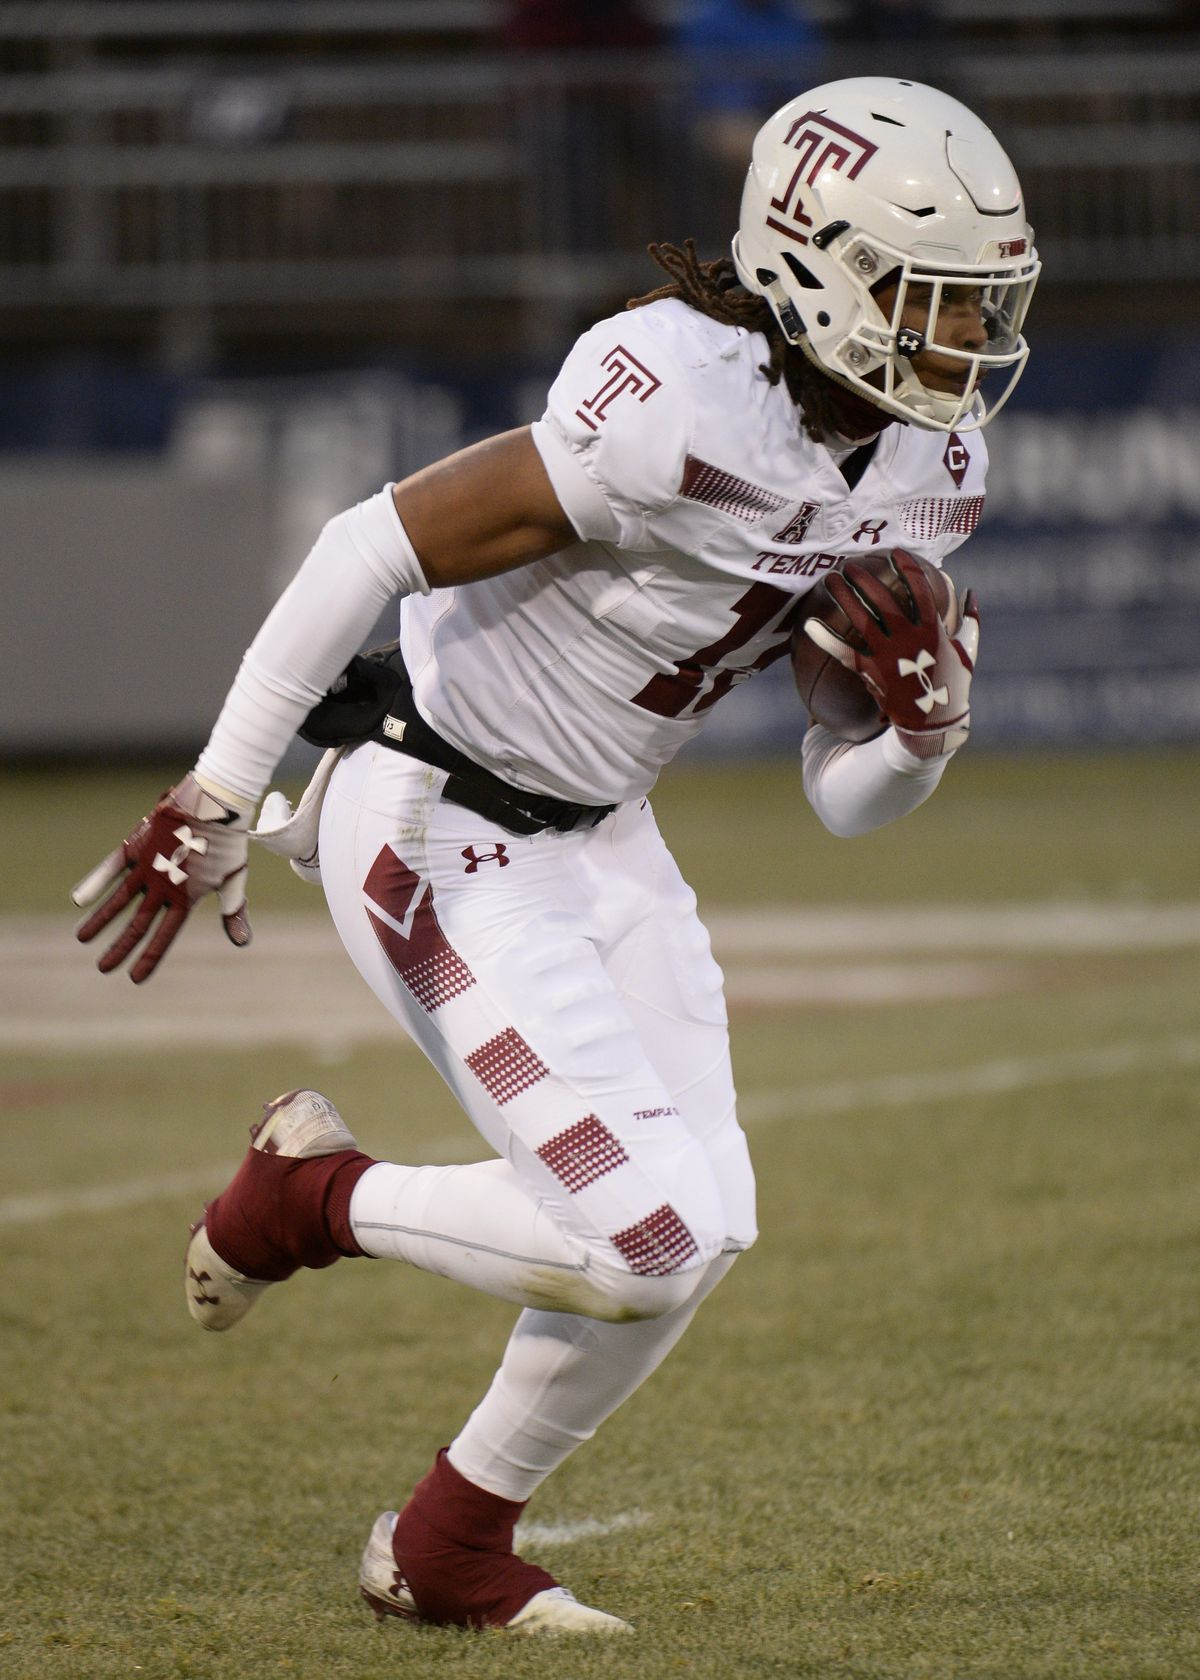 COLLEGE FOOTBALL: NOV 24 Temple at UConn